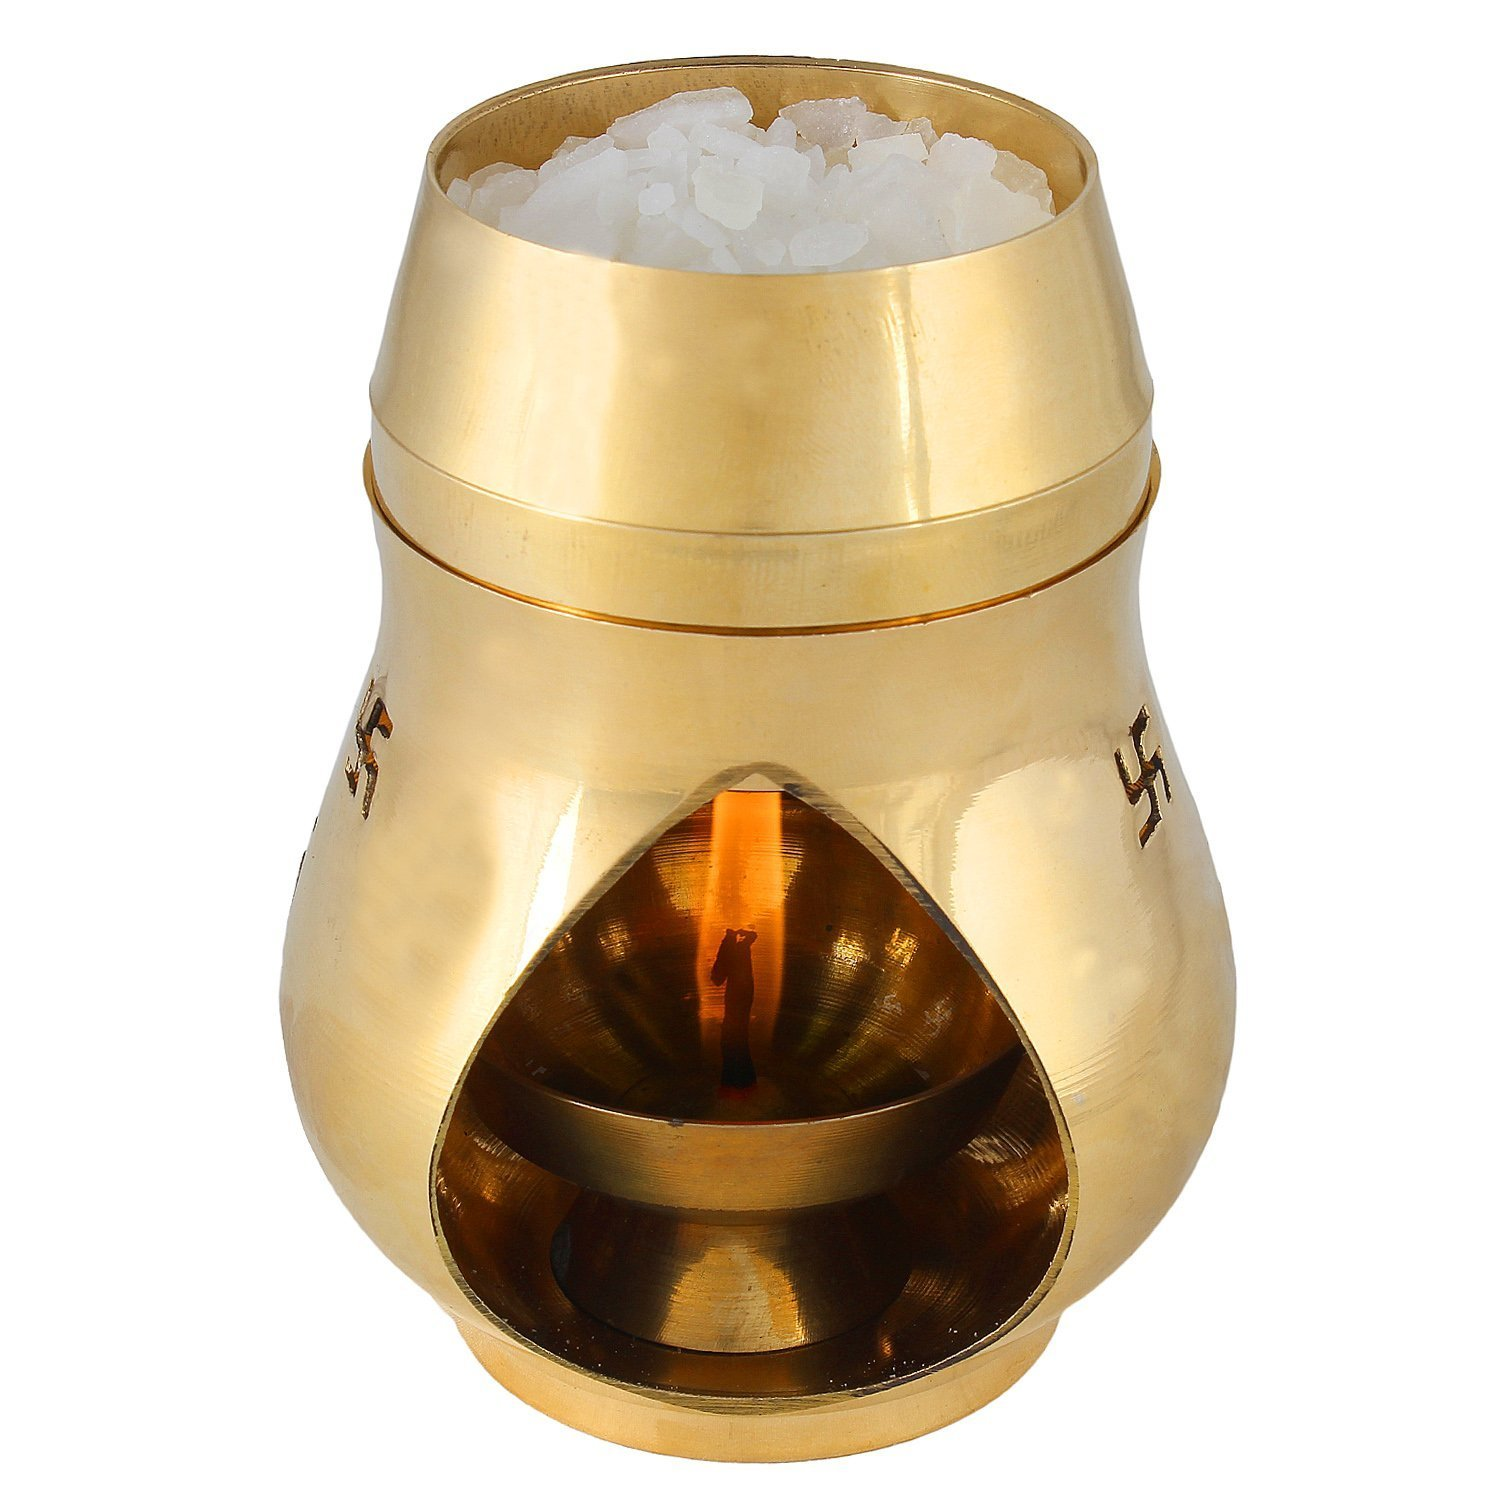 Odishabazaar Brass Camphor Lamp- Protect House From All Negative Energies by Odishabazaar